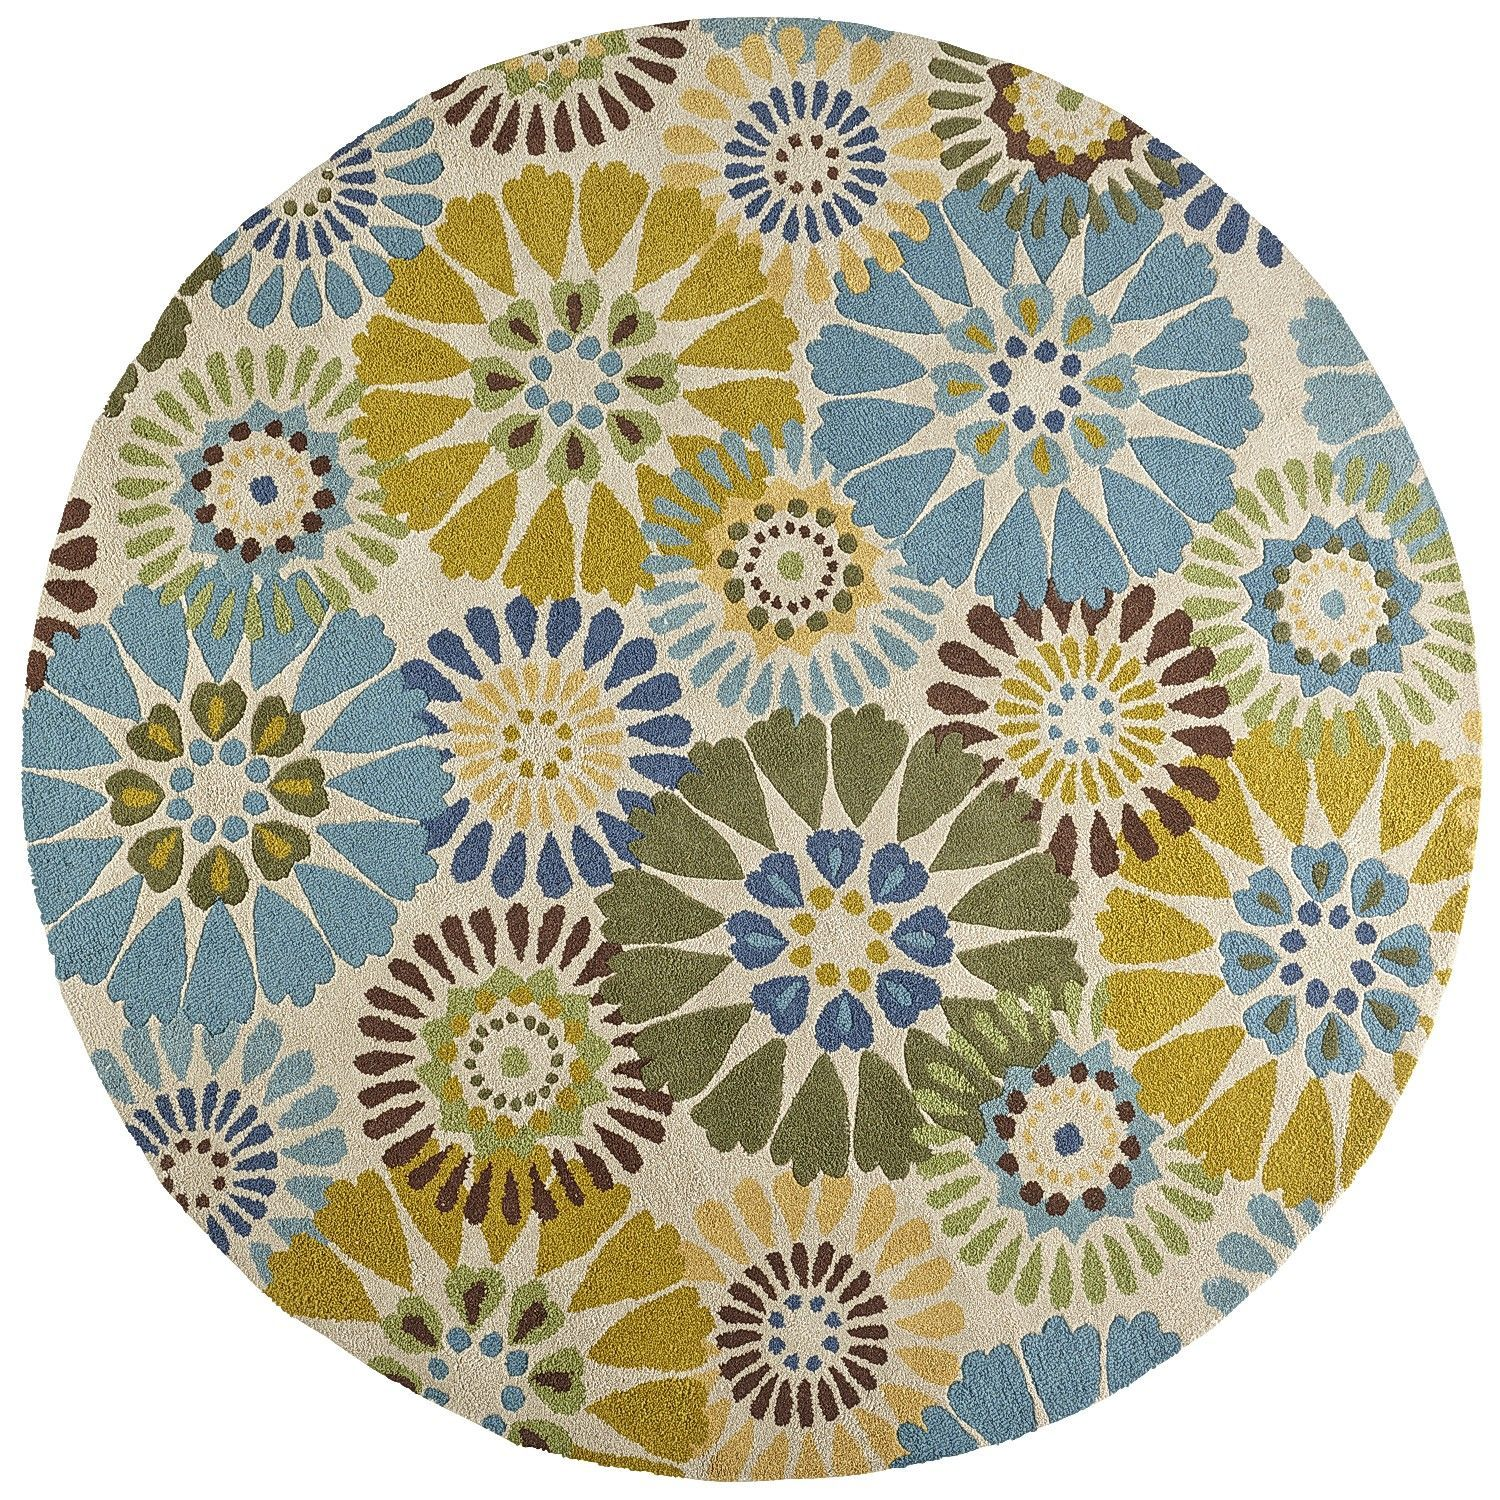 Pier One Round Rugs Designs